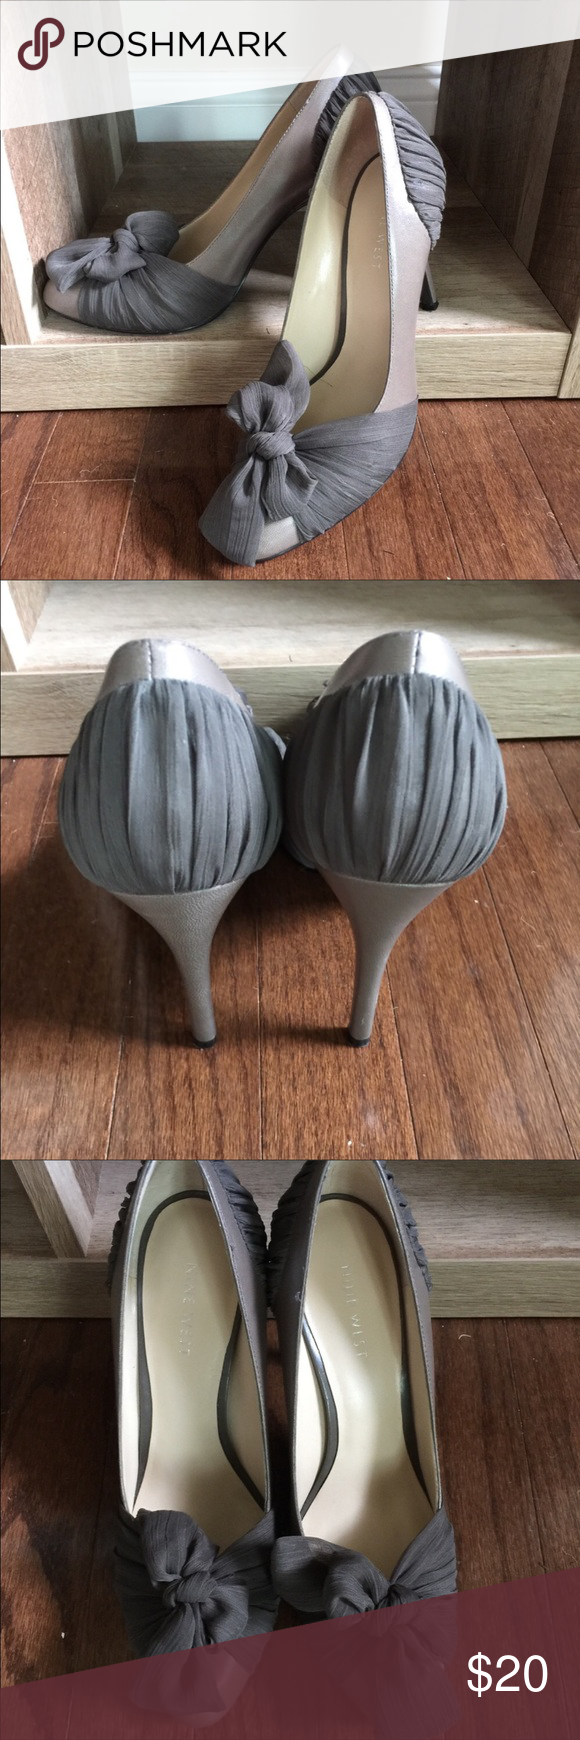 Nine West Heels Nine West Shoes. Size 7m. 3in heel. Oliveish color. In good condition no scuffs or marks on Shoes. Thanks!! Nine West Shoes Heels